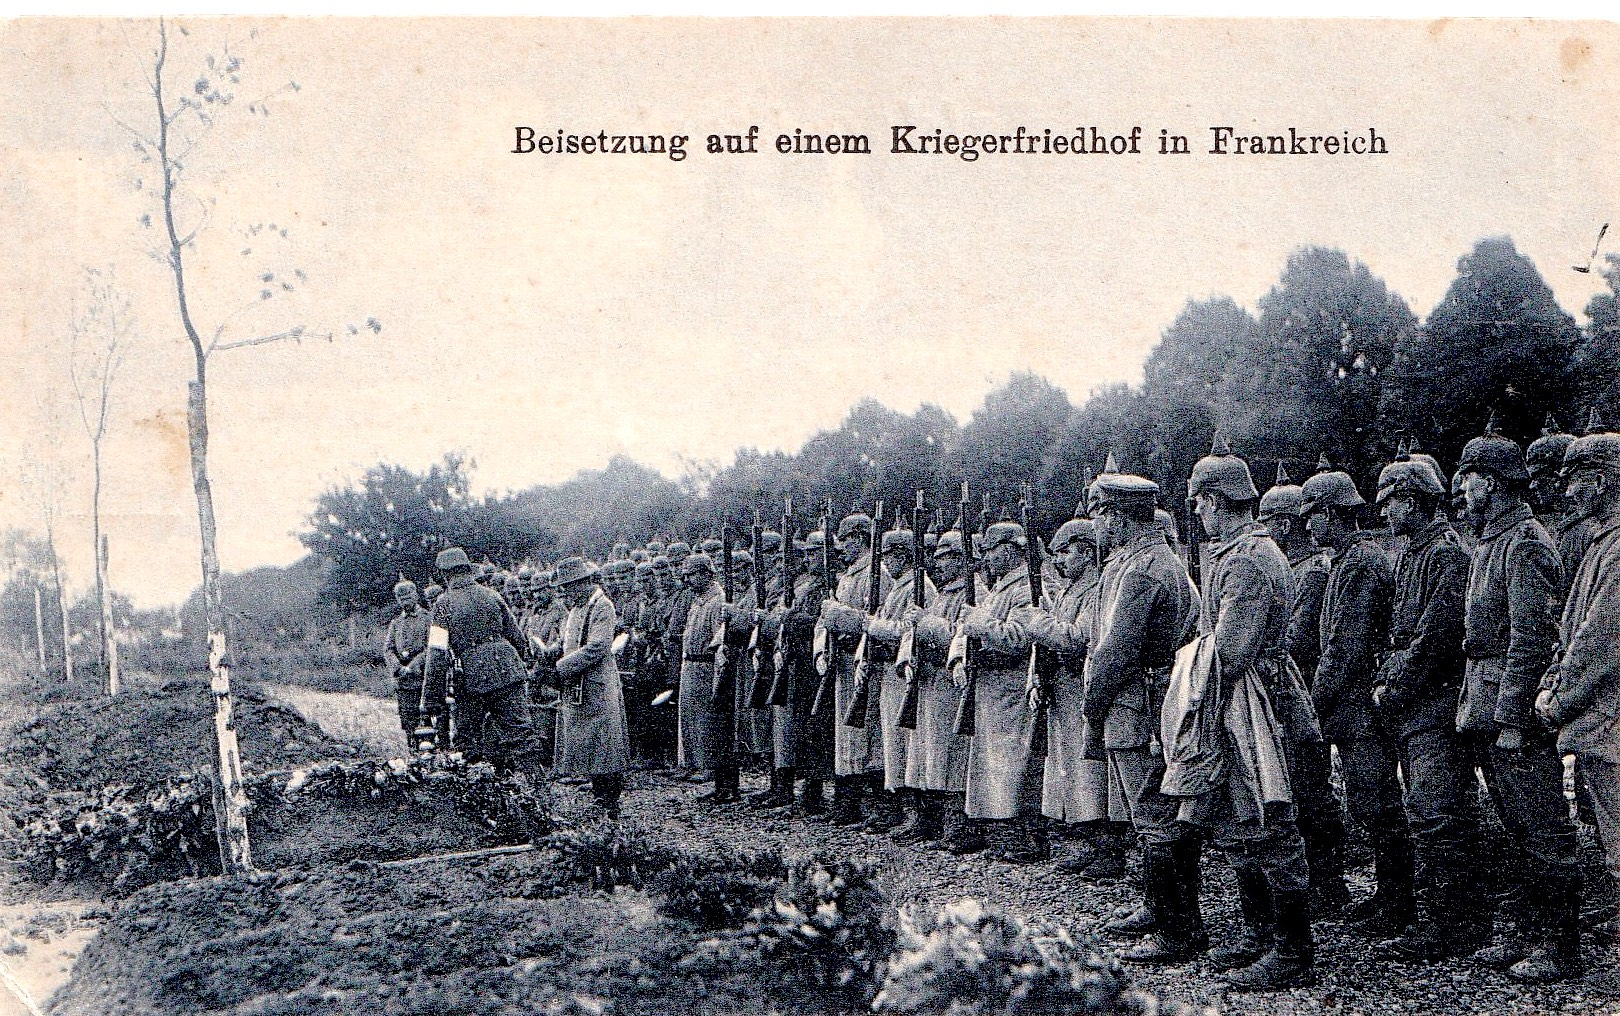 BURIAL AT A WAR CEMETERY IN FRANCE: in 1916, my mother received this postcard of German soldiers burying their dead on foreign soil.